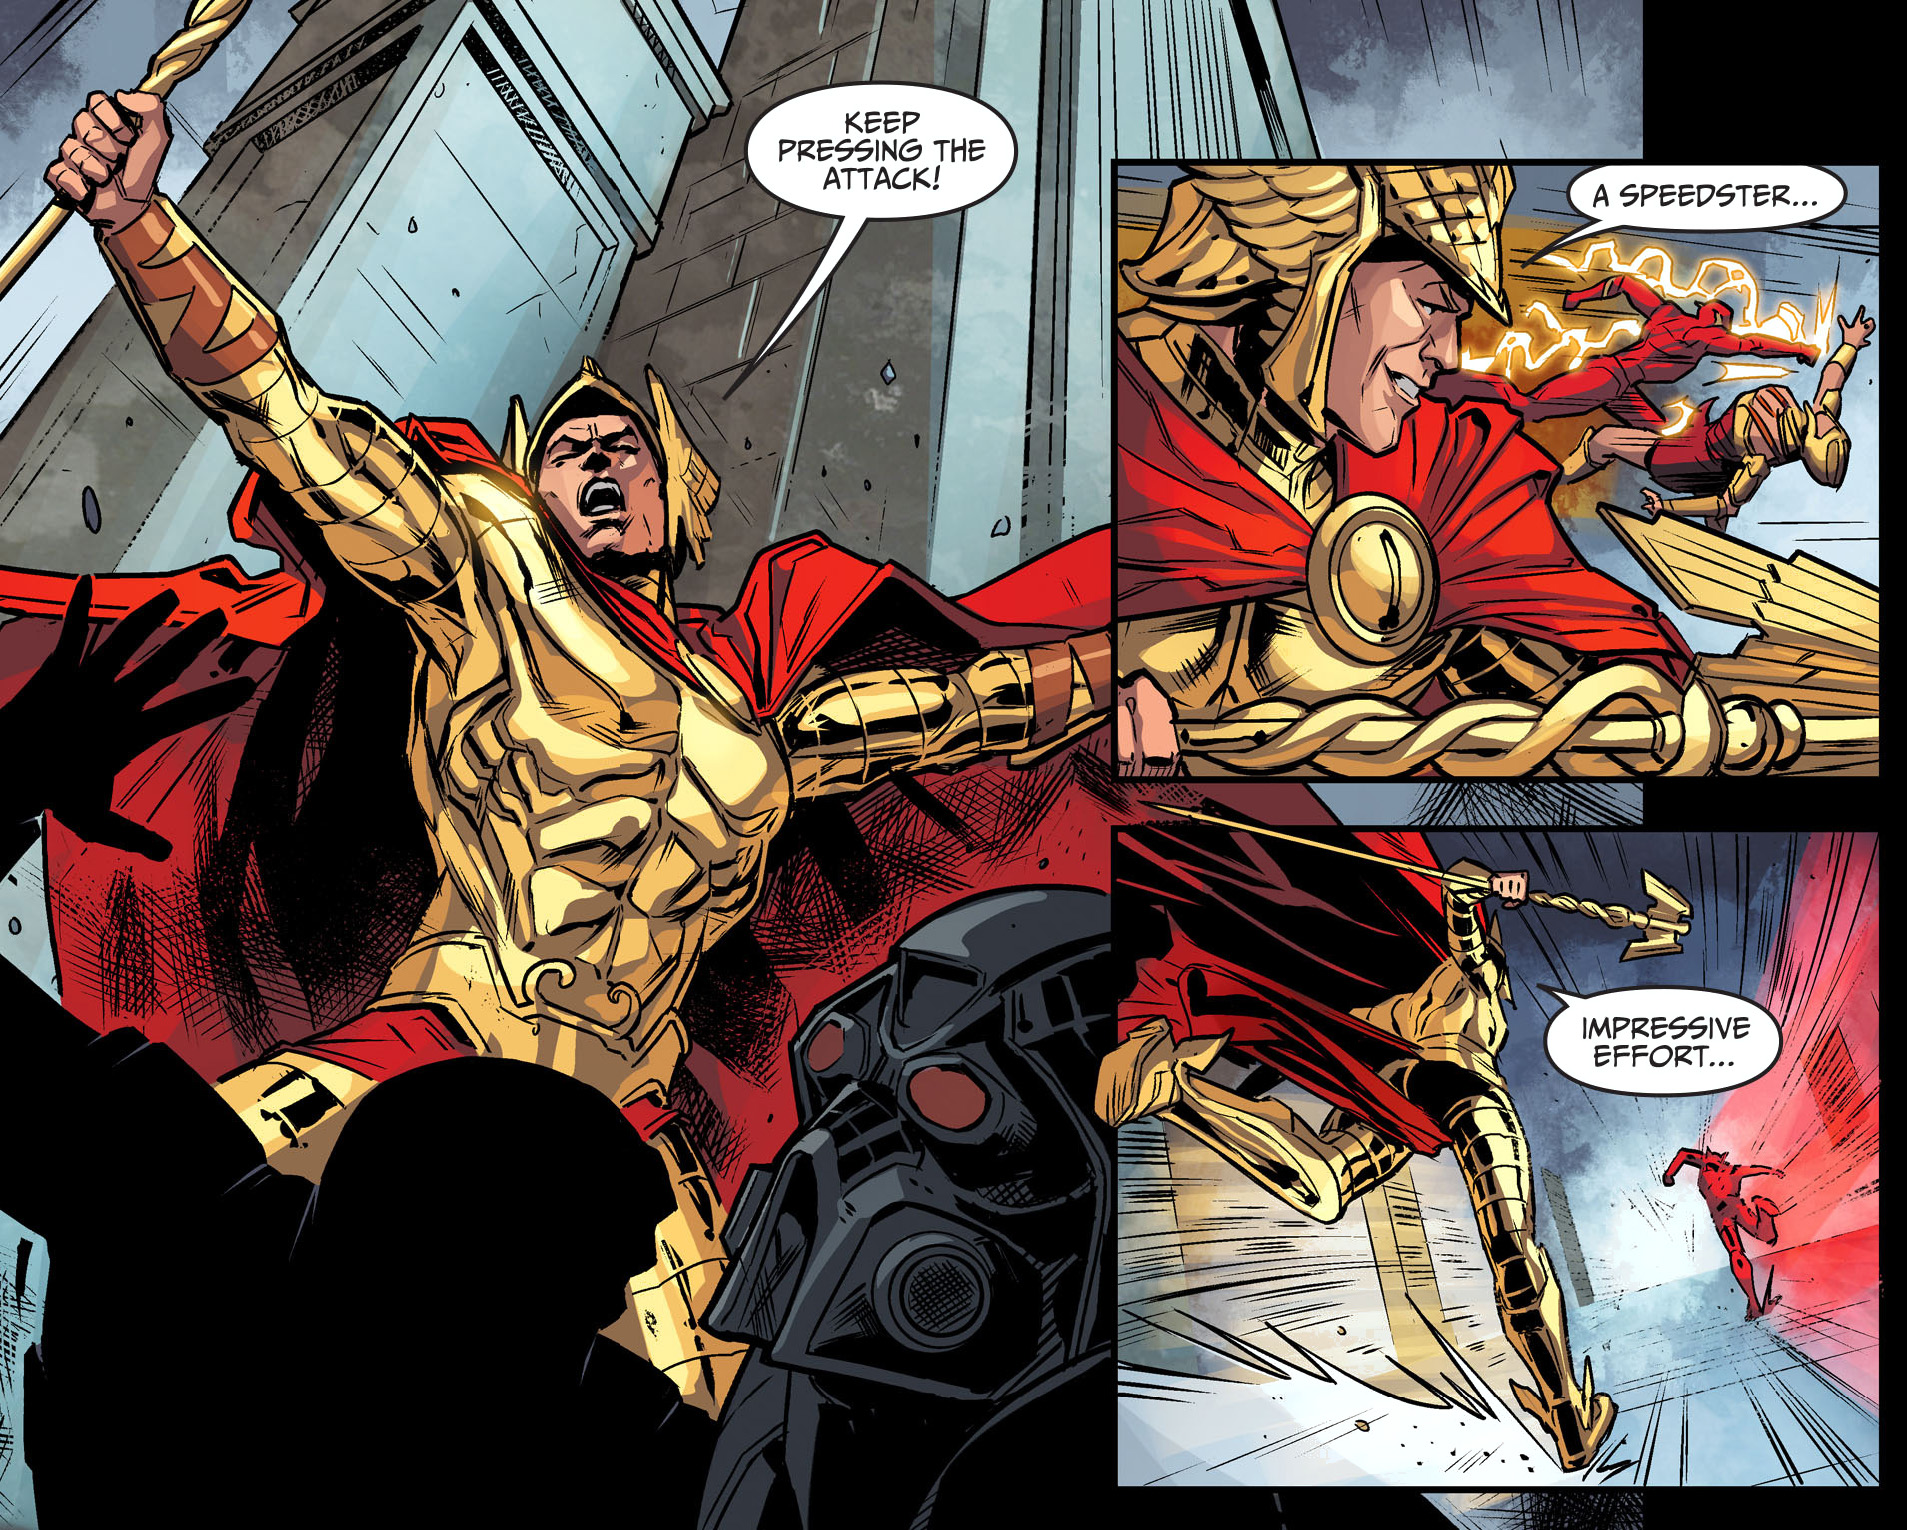 hermes takes out the flash (injustice gods among us)